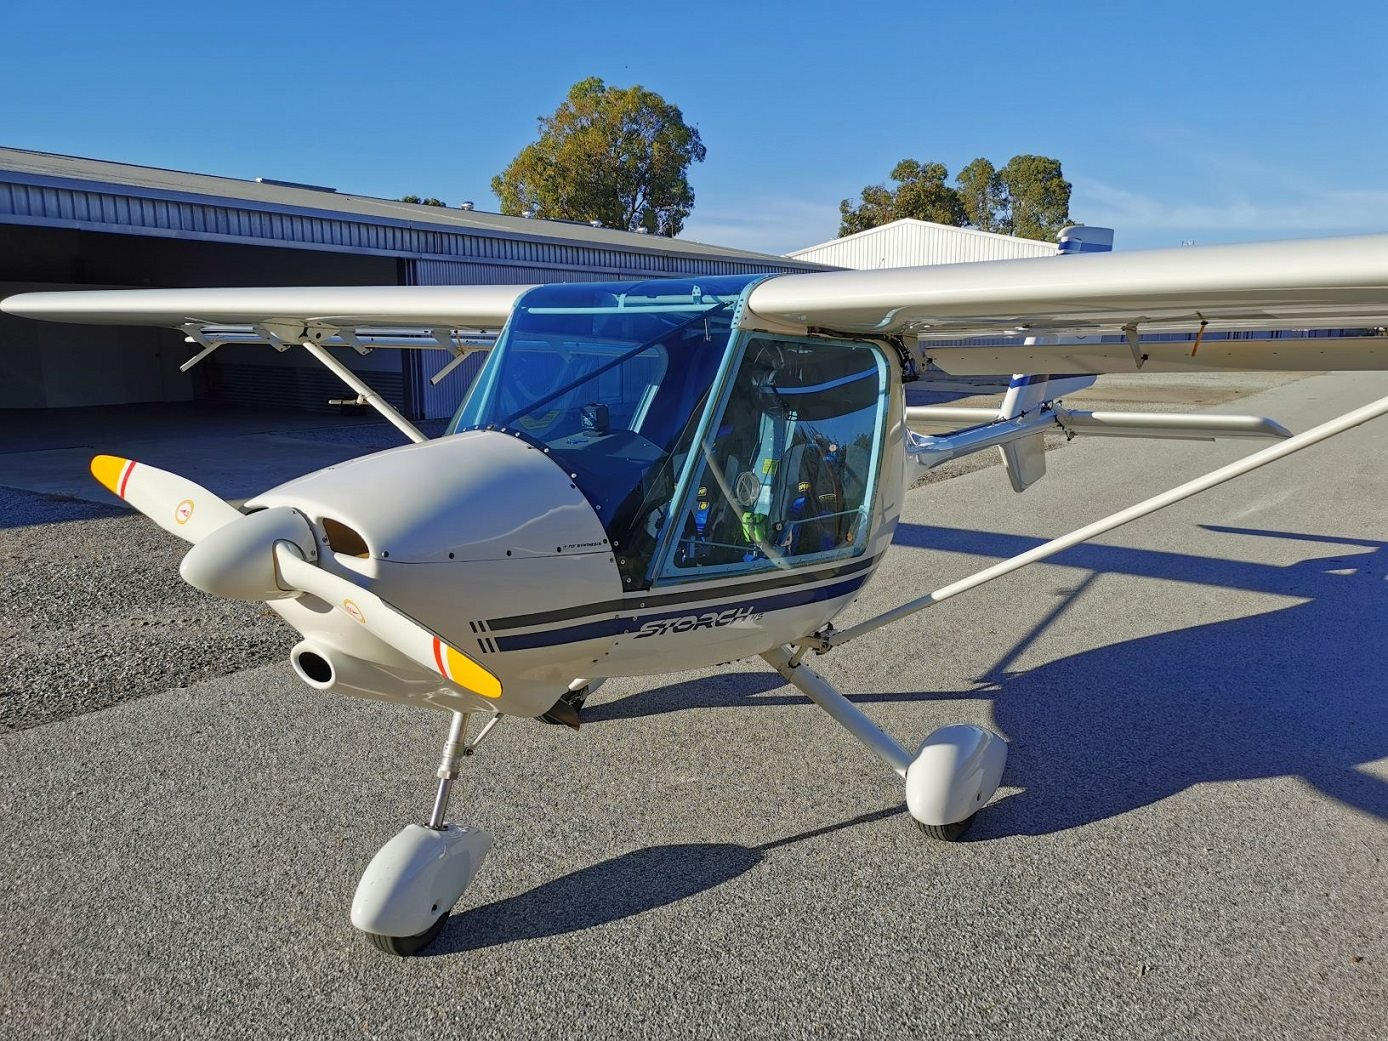 2010 Fly Synthesis Storch Aircraft